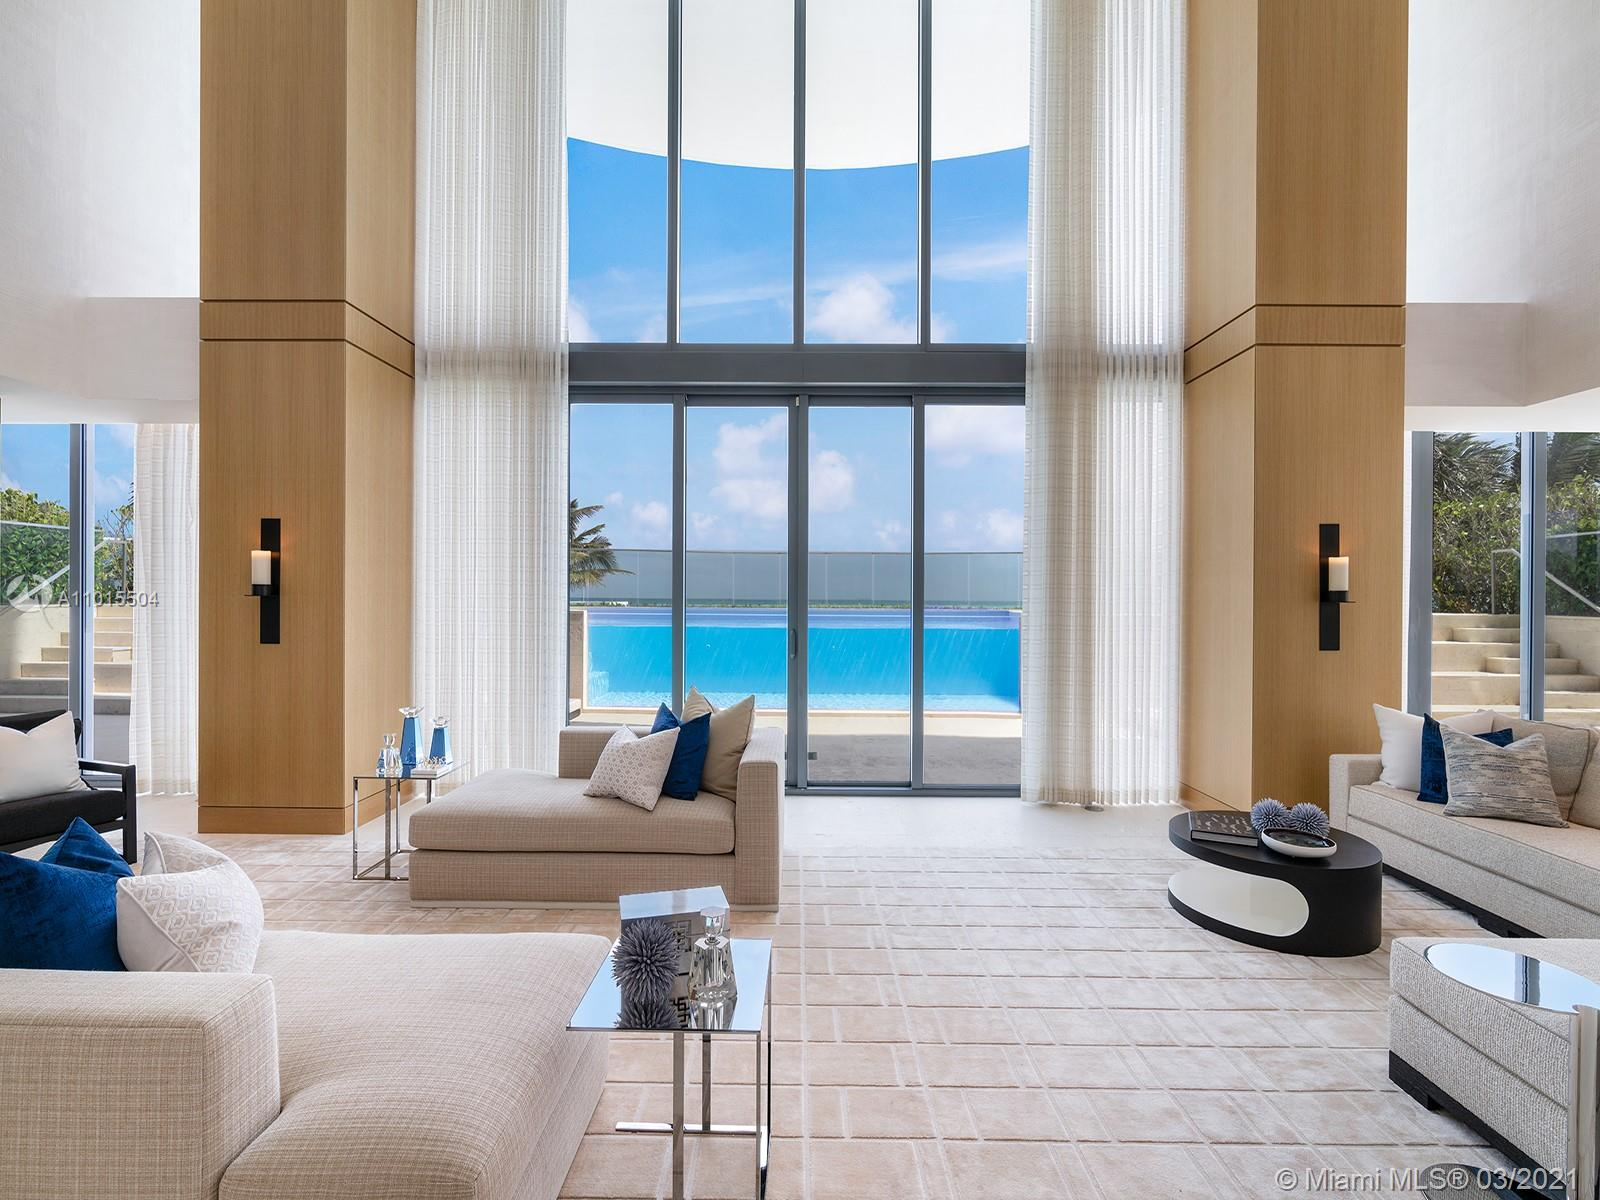 The Beach House at Regalia Sunny Isles is a lavish oceanfront residence at the scale of a private estate home, with all the conveniences of an ultra-luxury condominium. It occupies two full floors, at a whopping 17,015 sq. ft, not including the expansive wrap-around terraces. The sheer scale of the Beach House accommodates a variety of living and entertainment areas, from the double-height great room that opens onto the glass-walled oceanfront pool and hot tub, to the adjoining summer kitchen, the quartz and bronze cocktail bar, private spa with hammam steam room, chef's kitchen with Wolf & Subzero appliances, and game room. The more private areas of the 6-bedroom home are just as special, with a guest living room, study, and massive master bathroom lined in floor-to-ceiling white onyx.